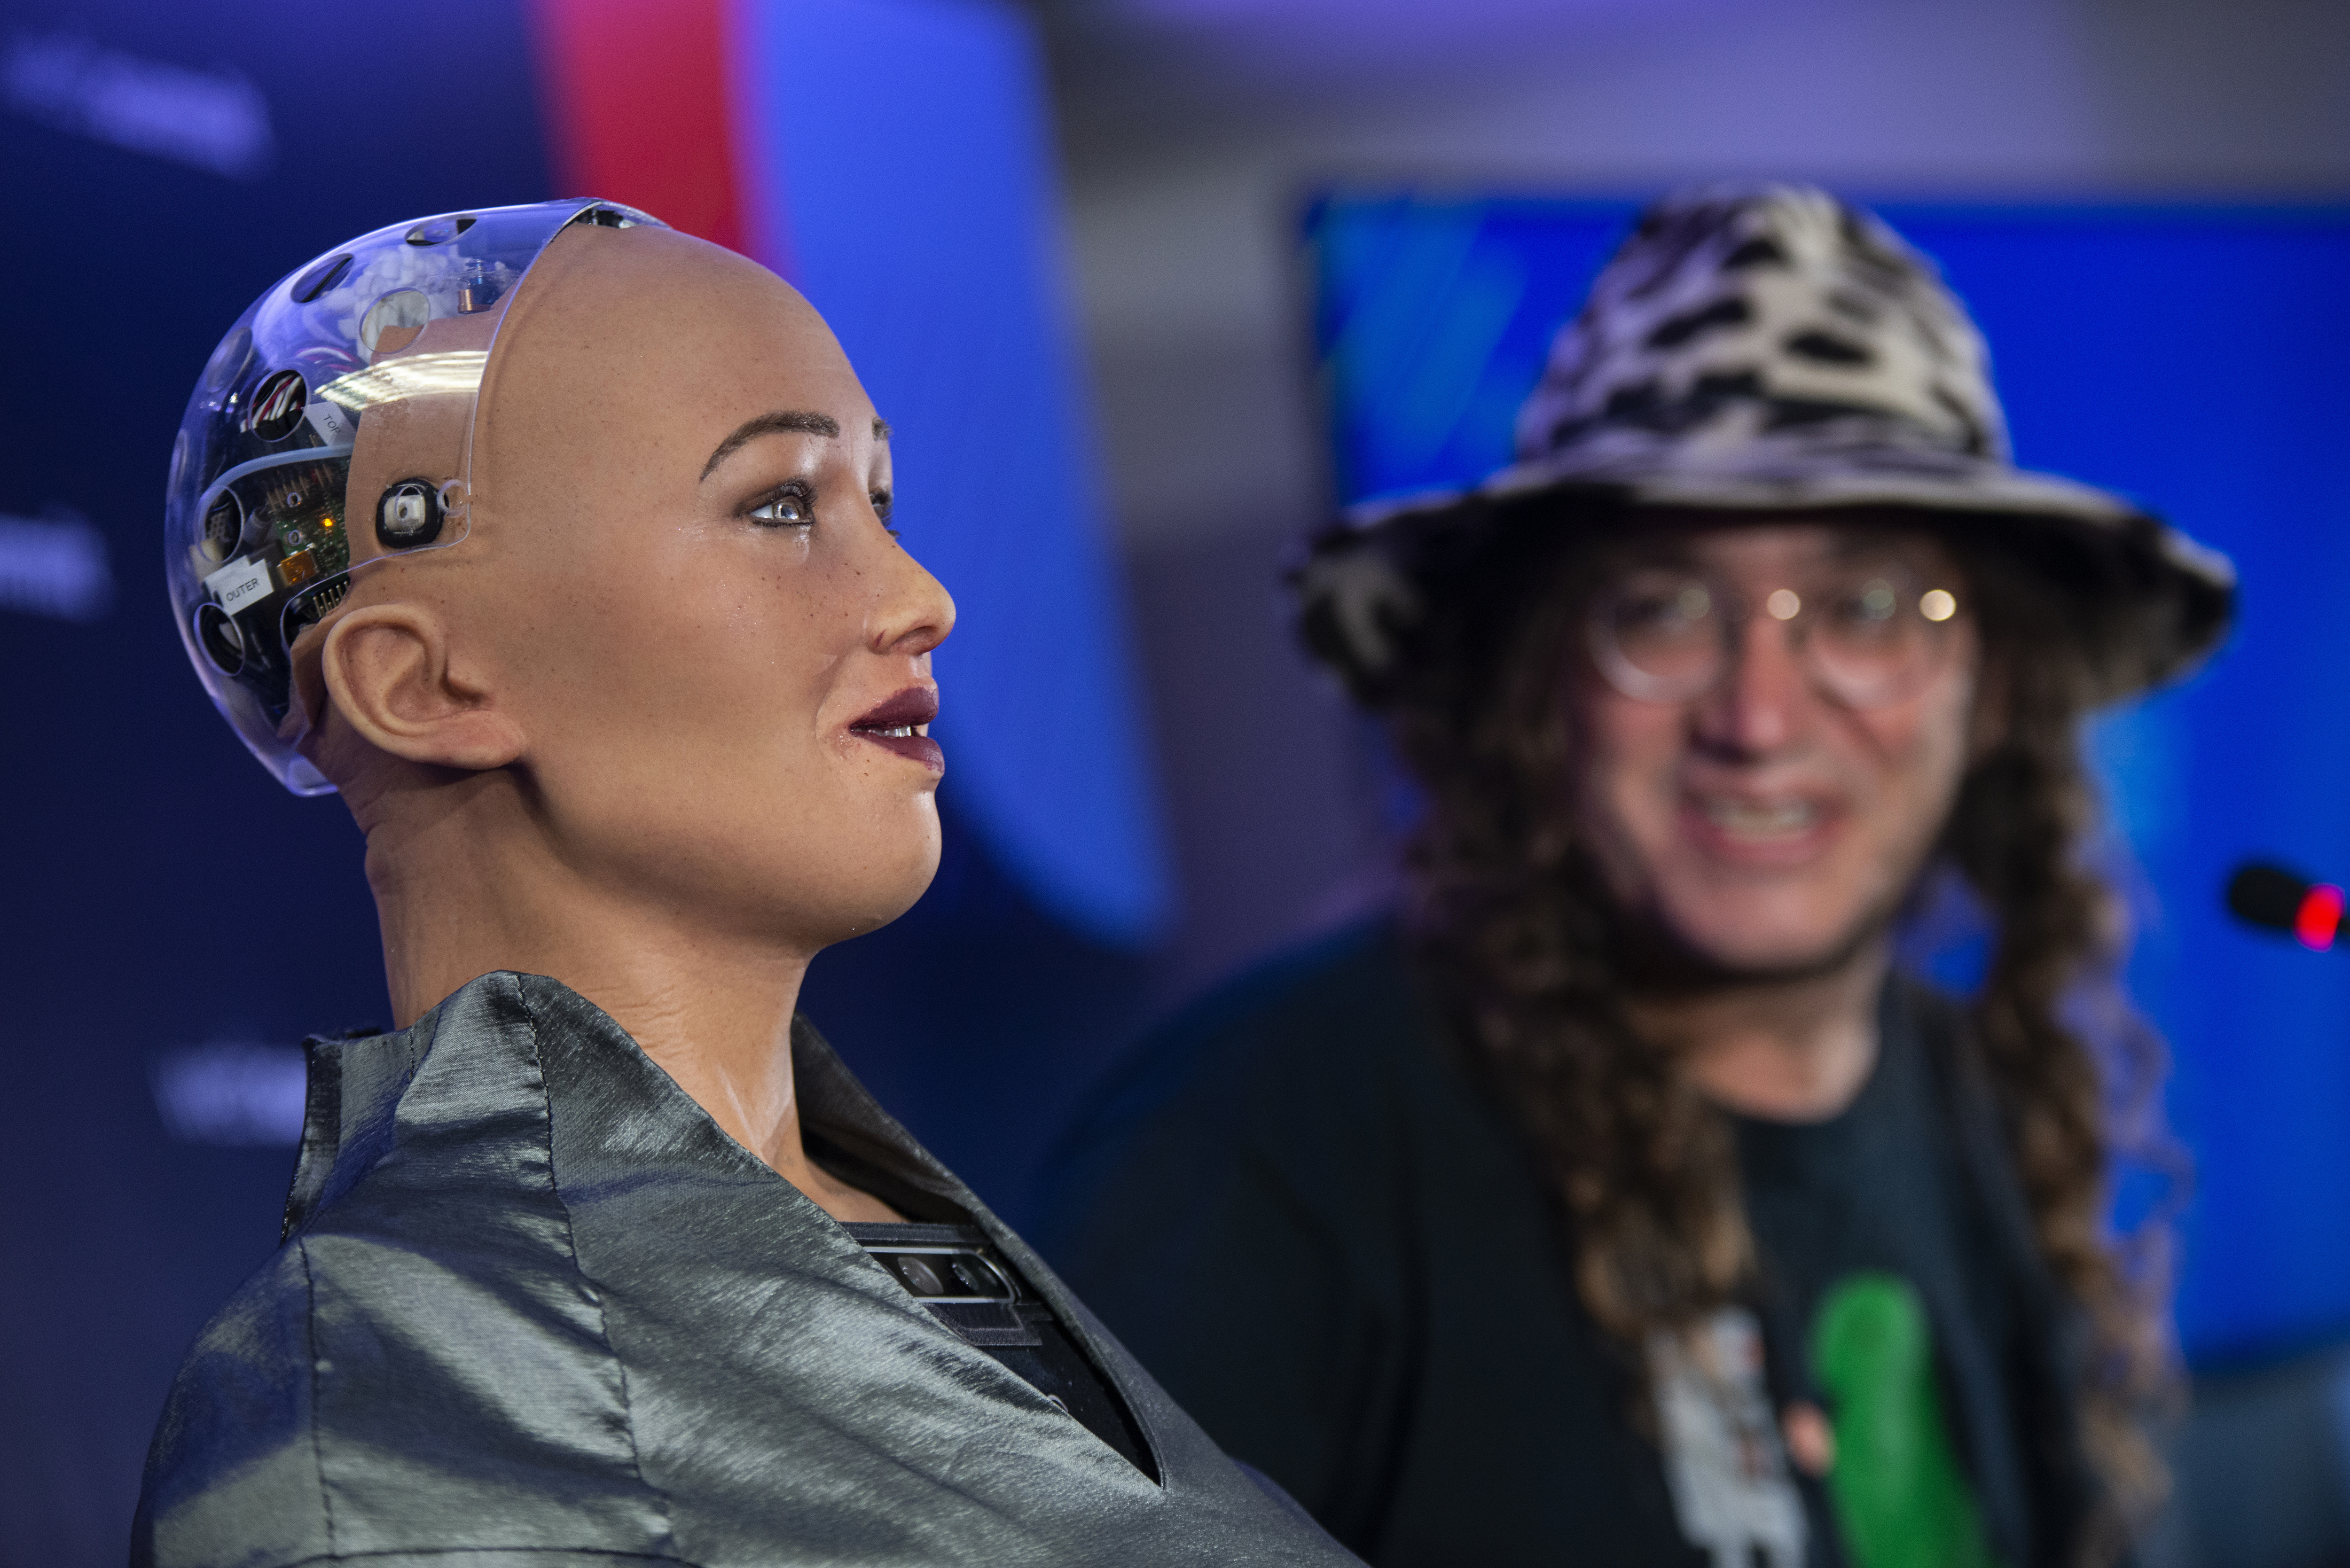 It s the age of automation and the robots are coming. But for what?